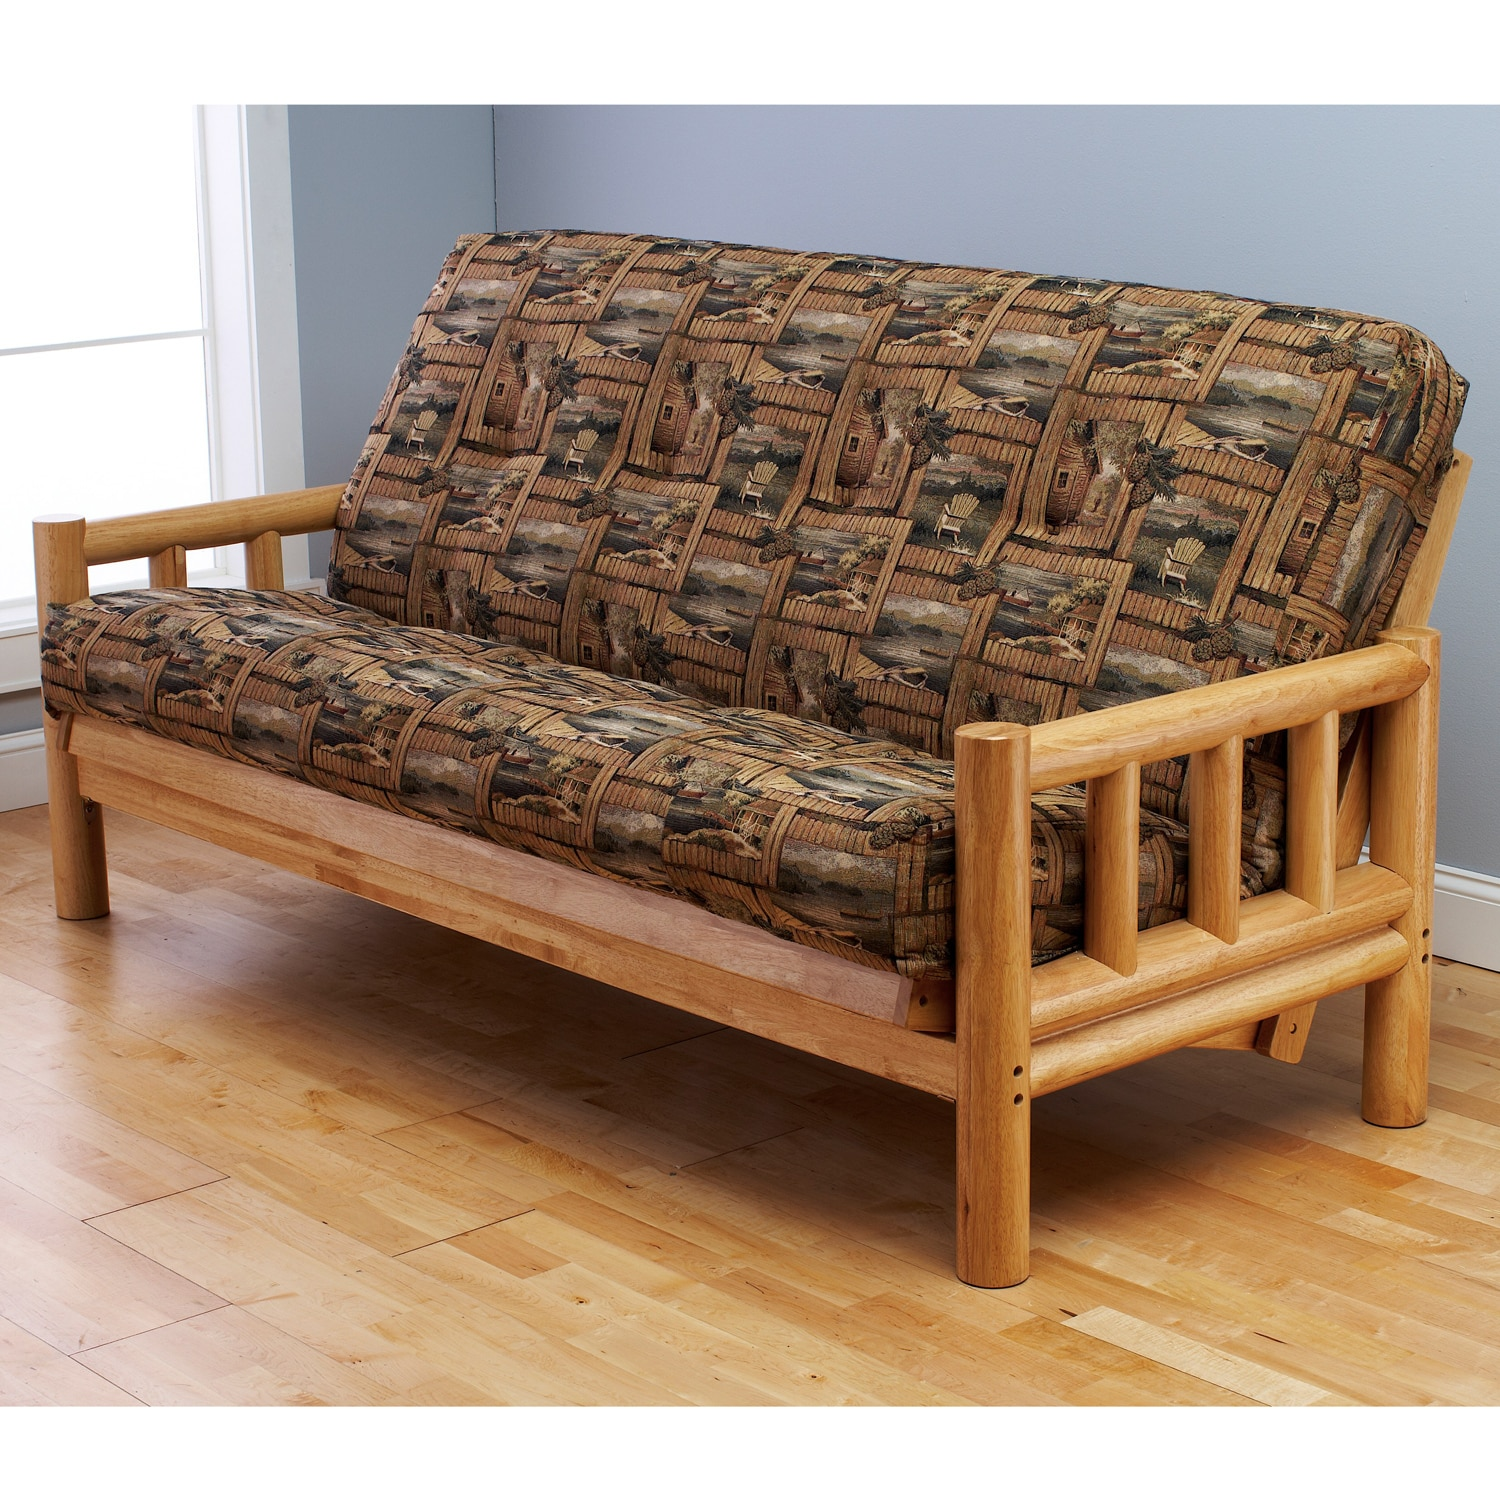 Aspen Lodge Natural Futon Frame and Innerspring Mattress Set at Sears.com